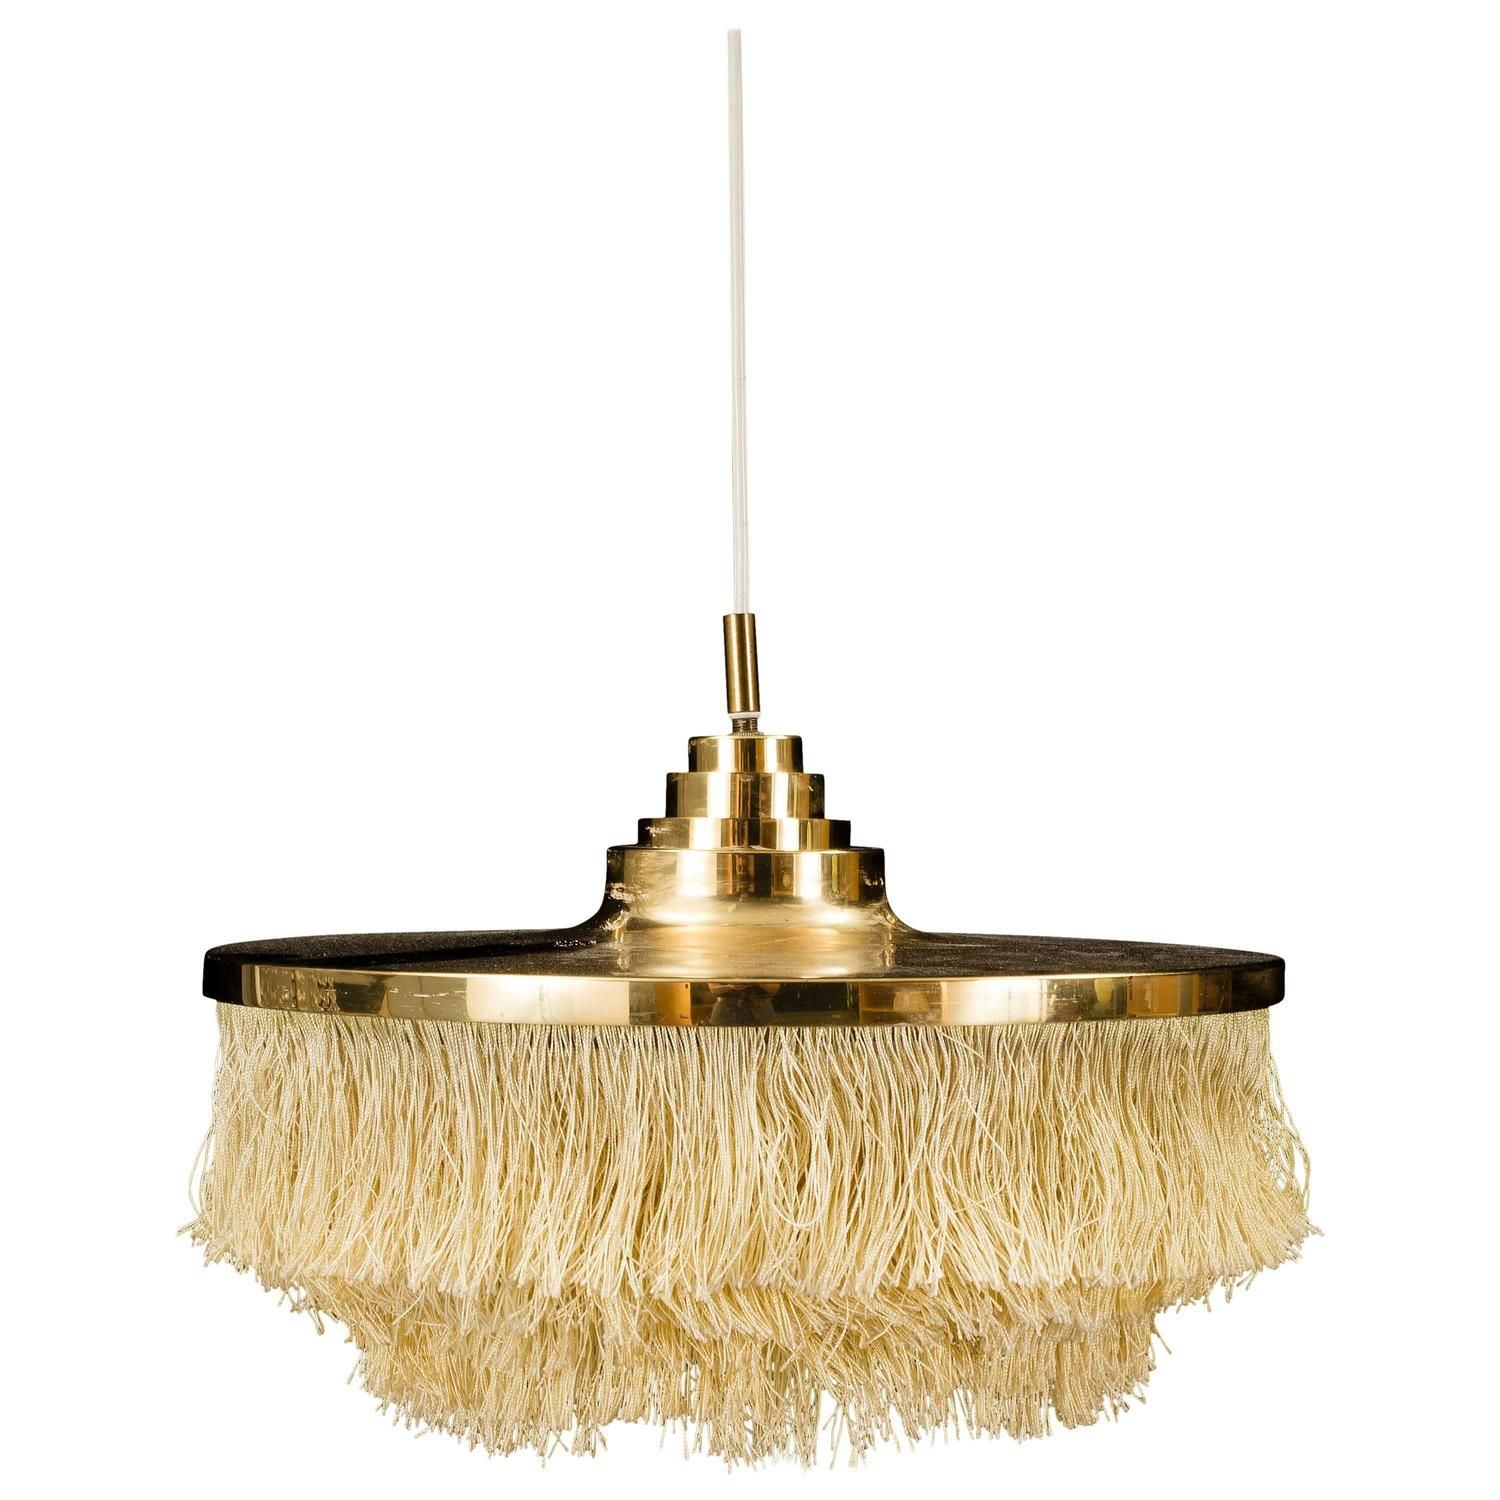 Chandelier with Cr¨me Colored Fringes by Hans Agne Jakobsson